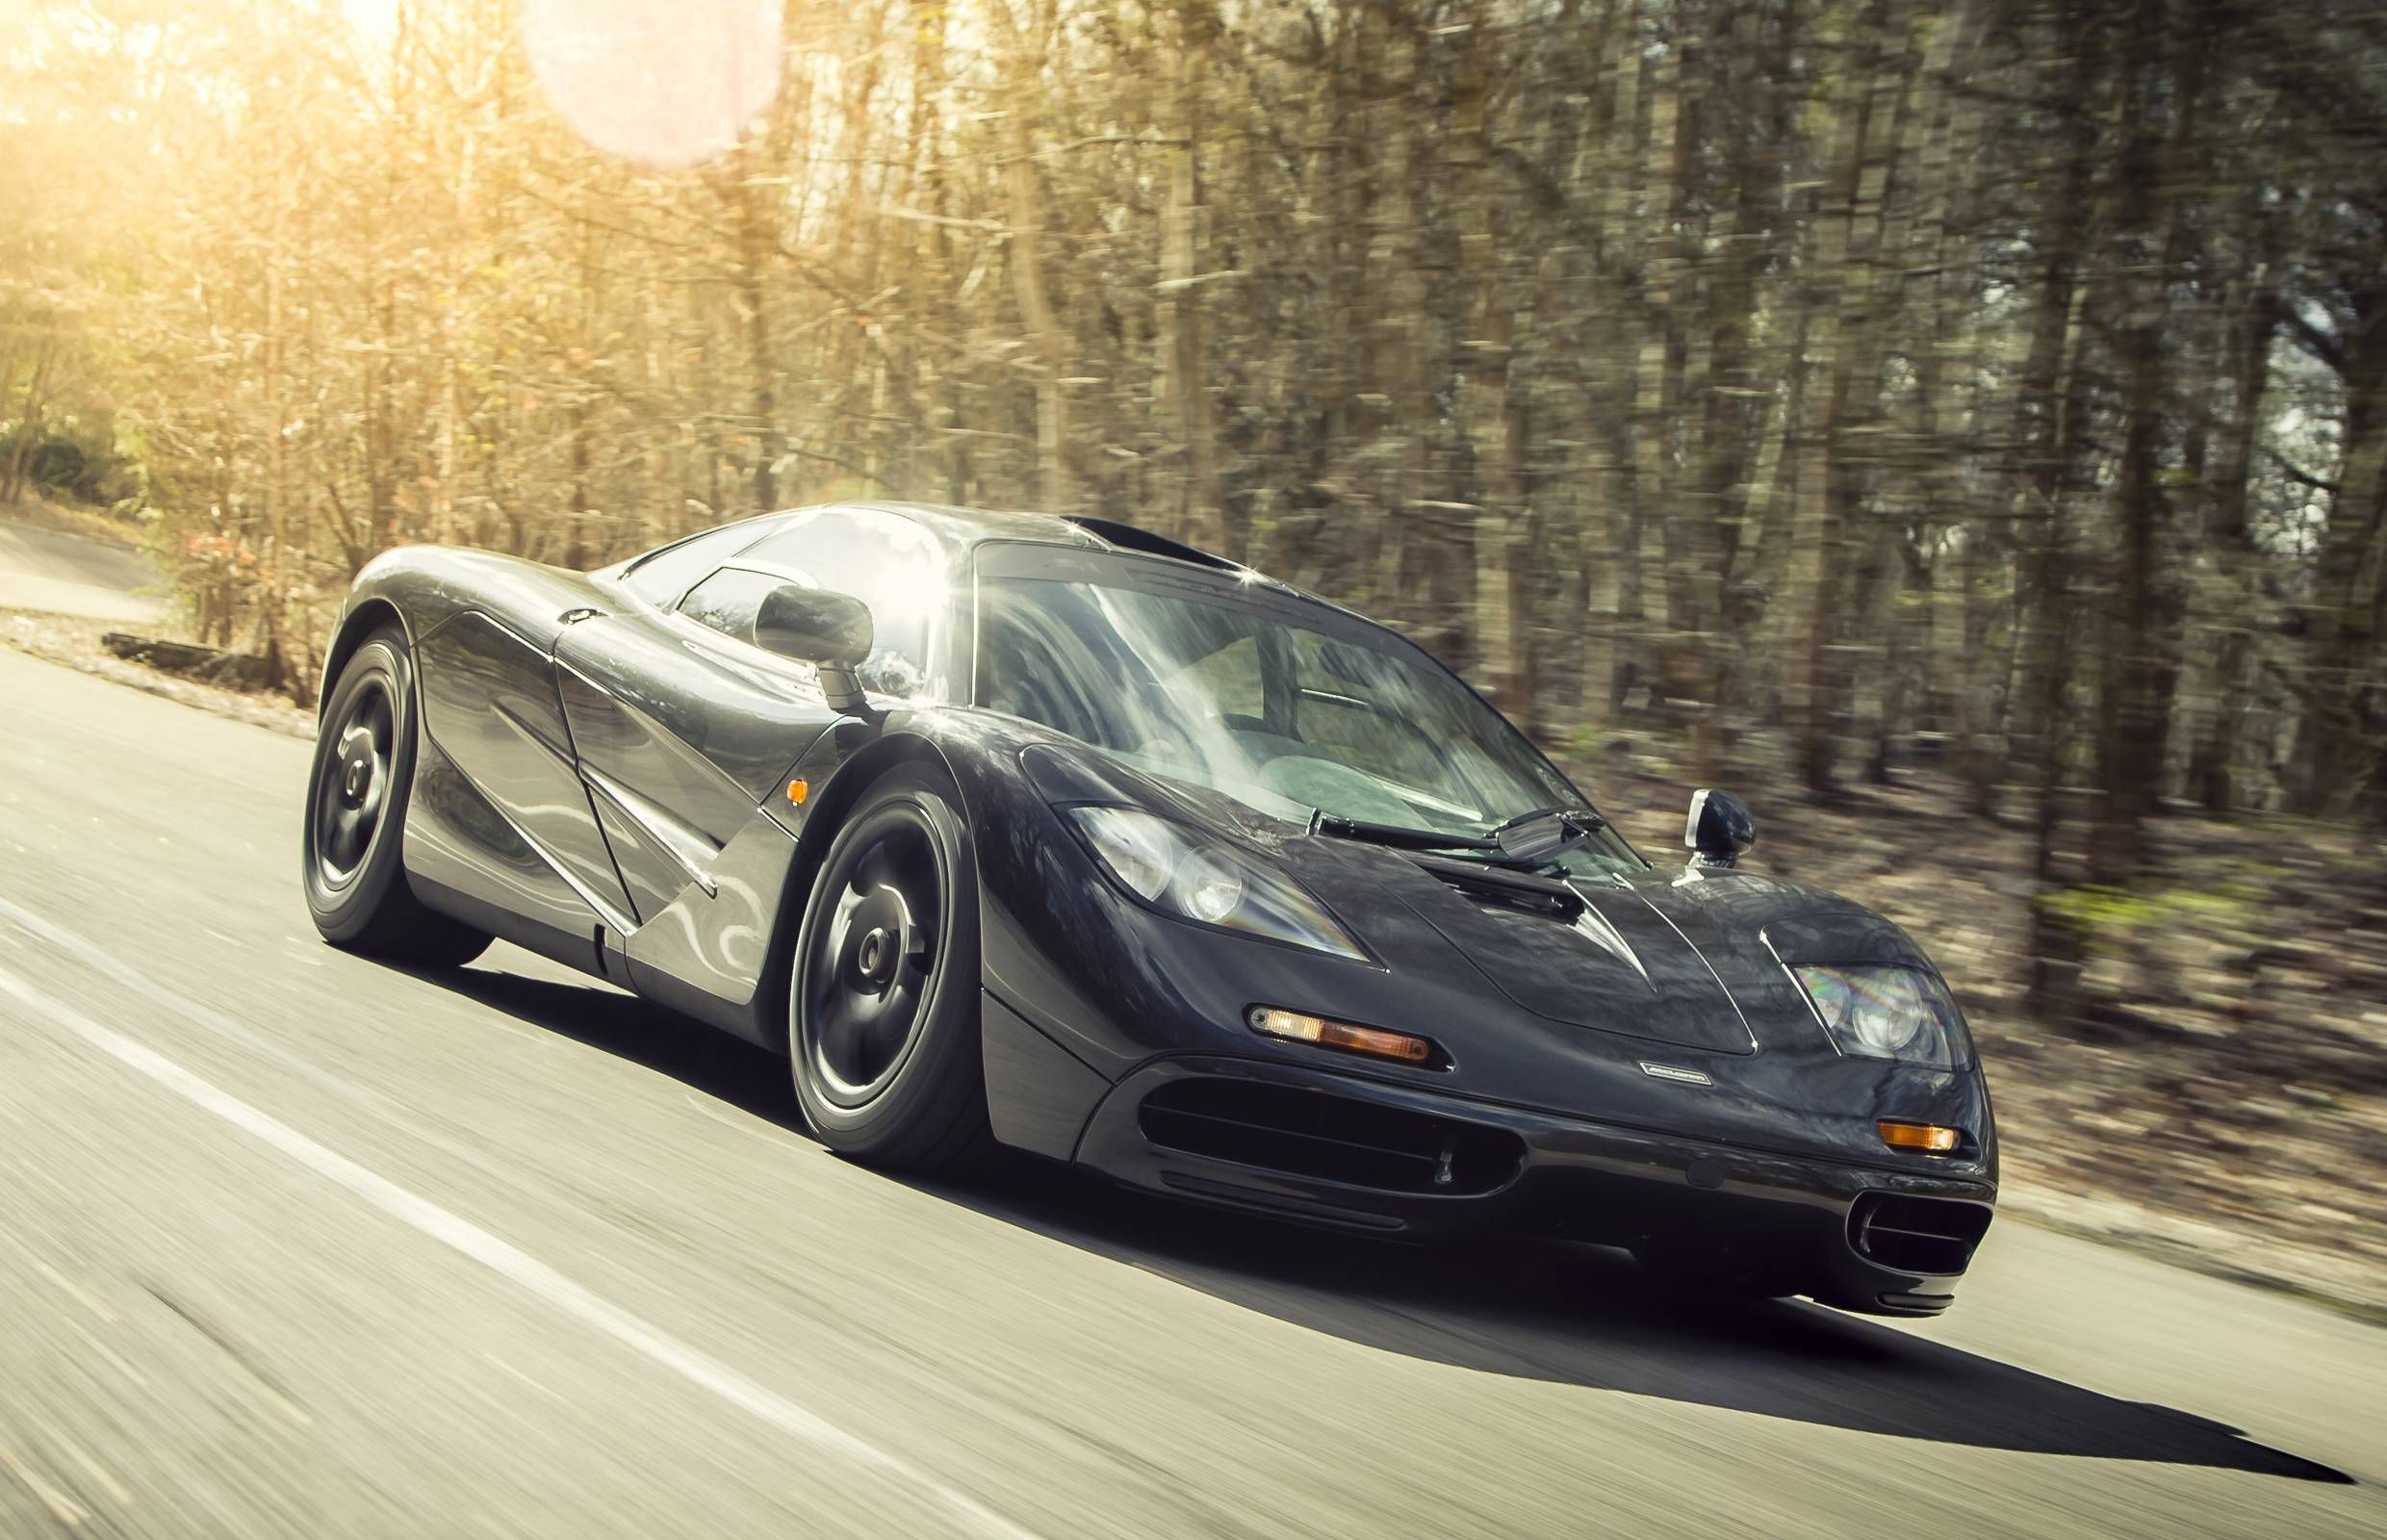 Mclaren Is Selling One Of The Last Factory Fresh F1 Supercars Mclaren F1 Super Cars Car